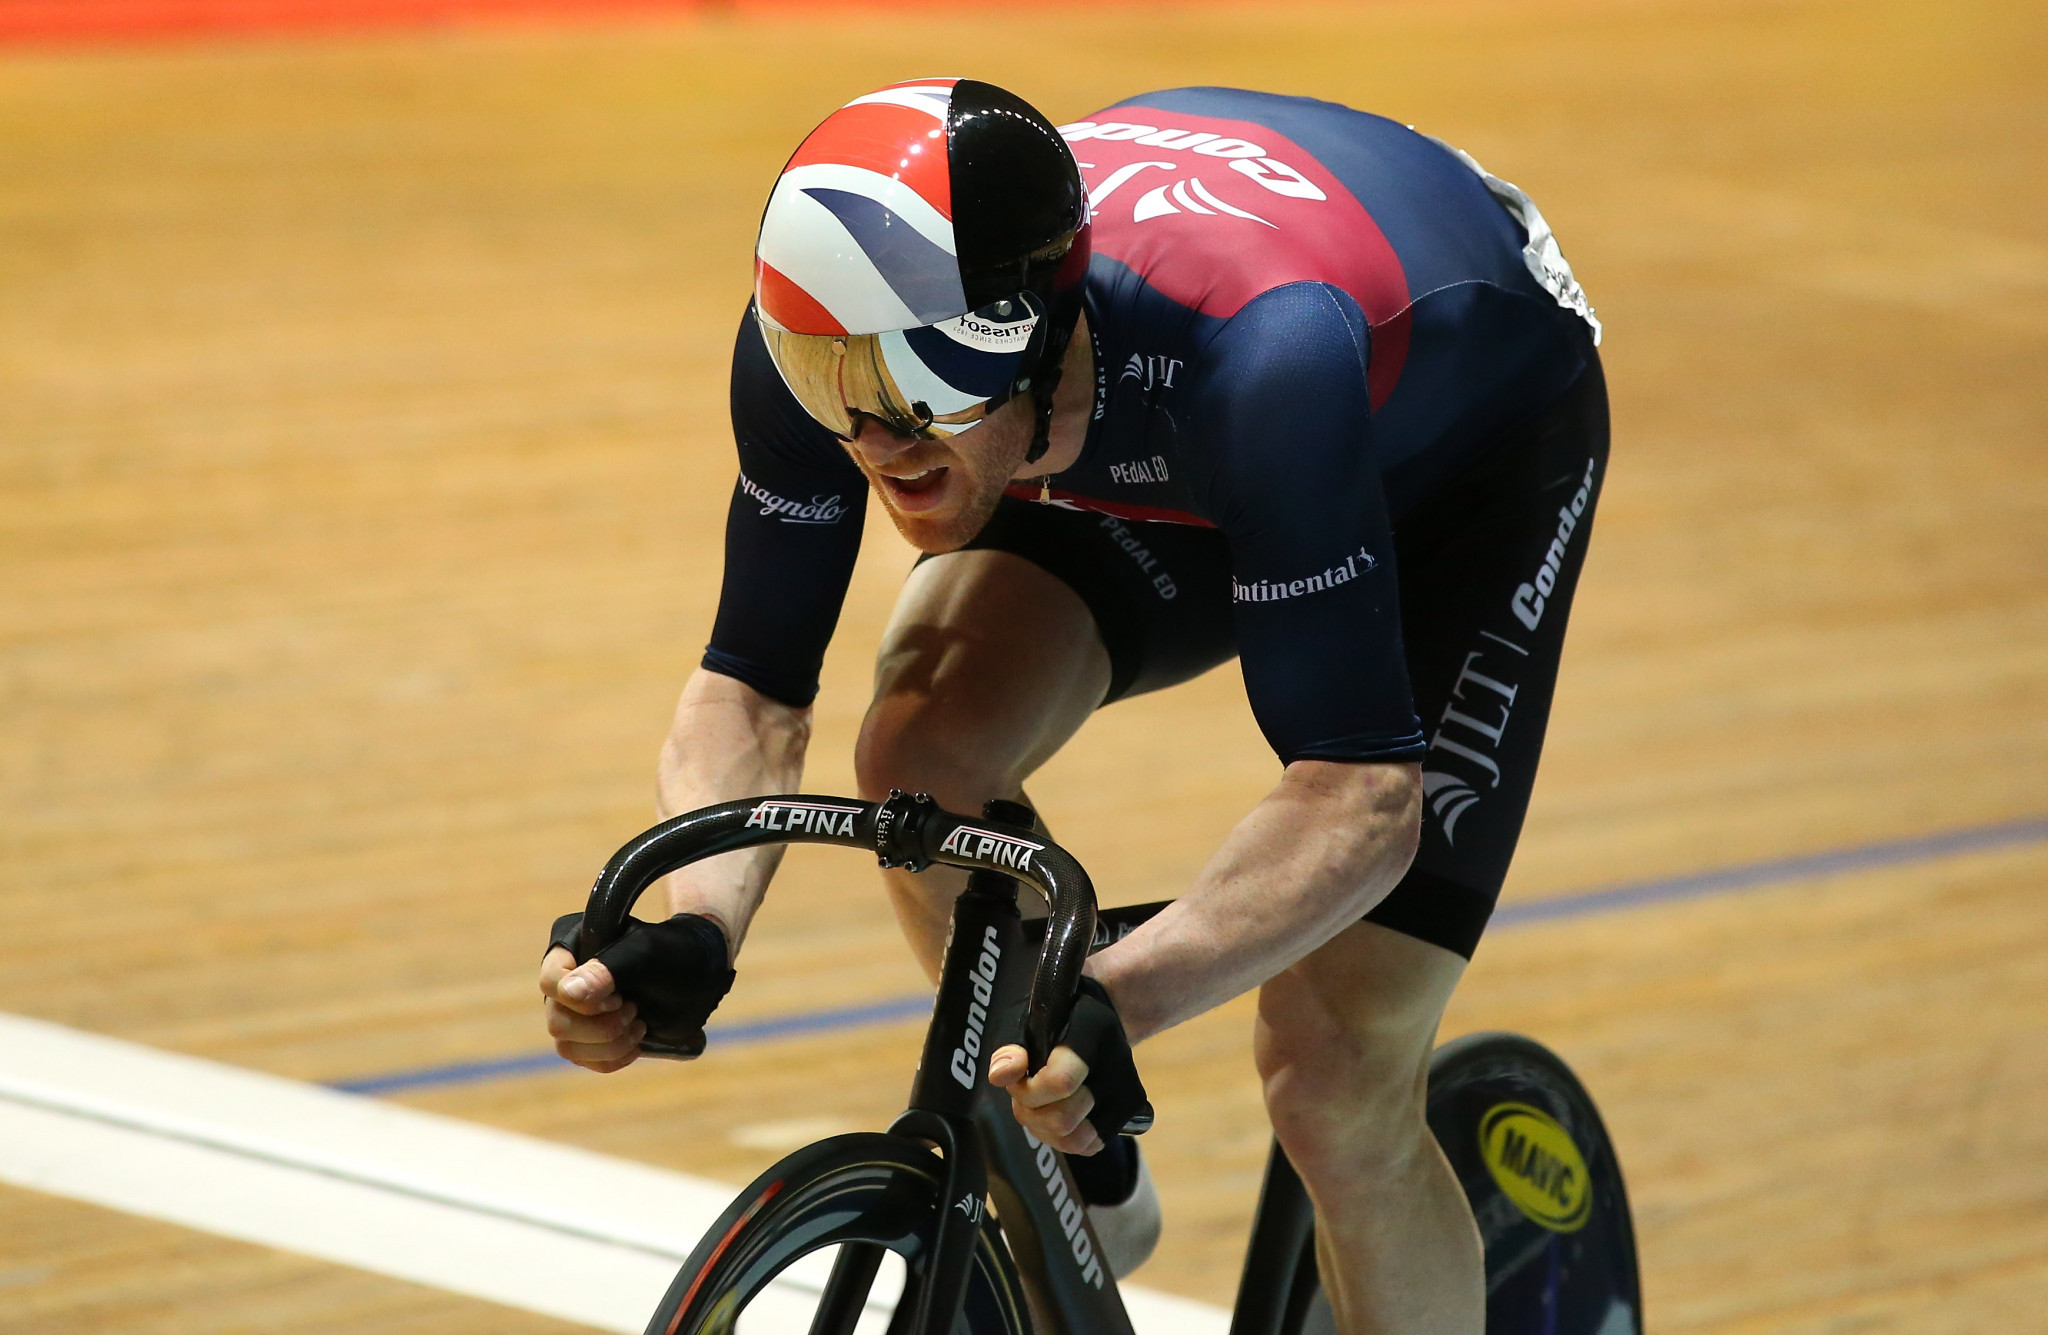 Britain team to beat with 2018-2019 UCI Track Cycling World Cup set to begin